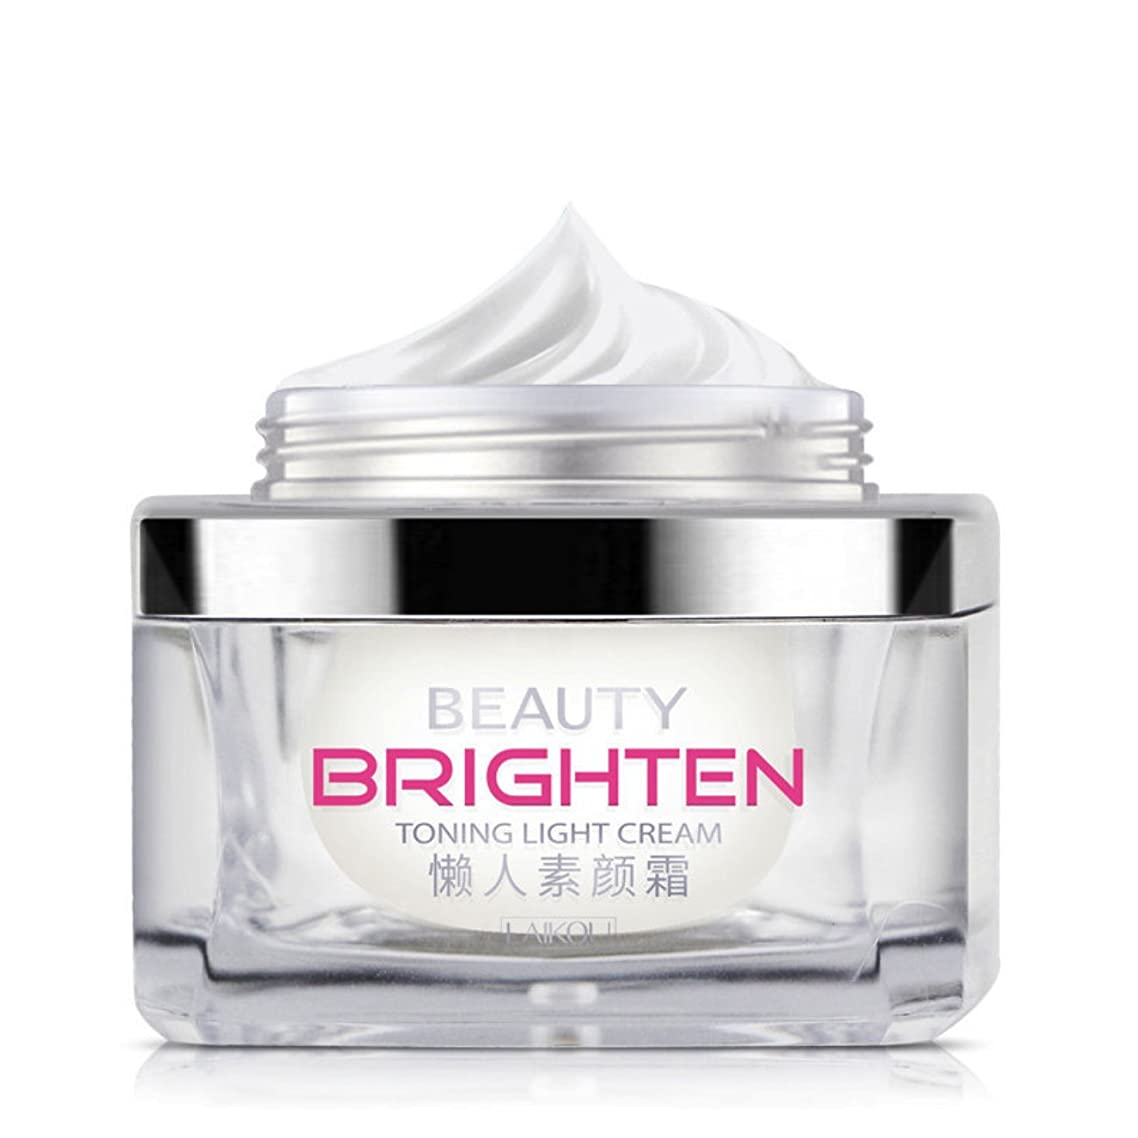 All In One Whitening, Anti-wrinkle and UV-defence Radiance Cream